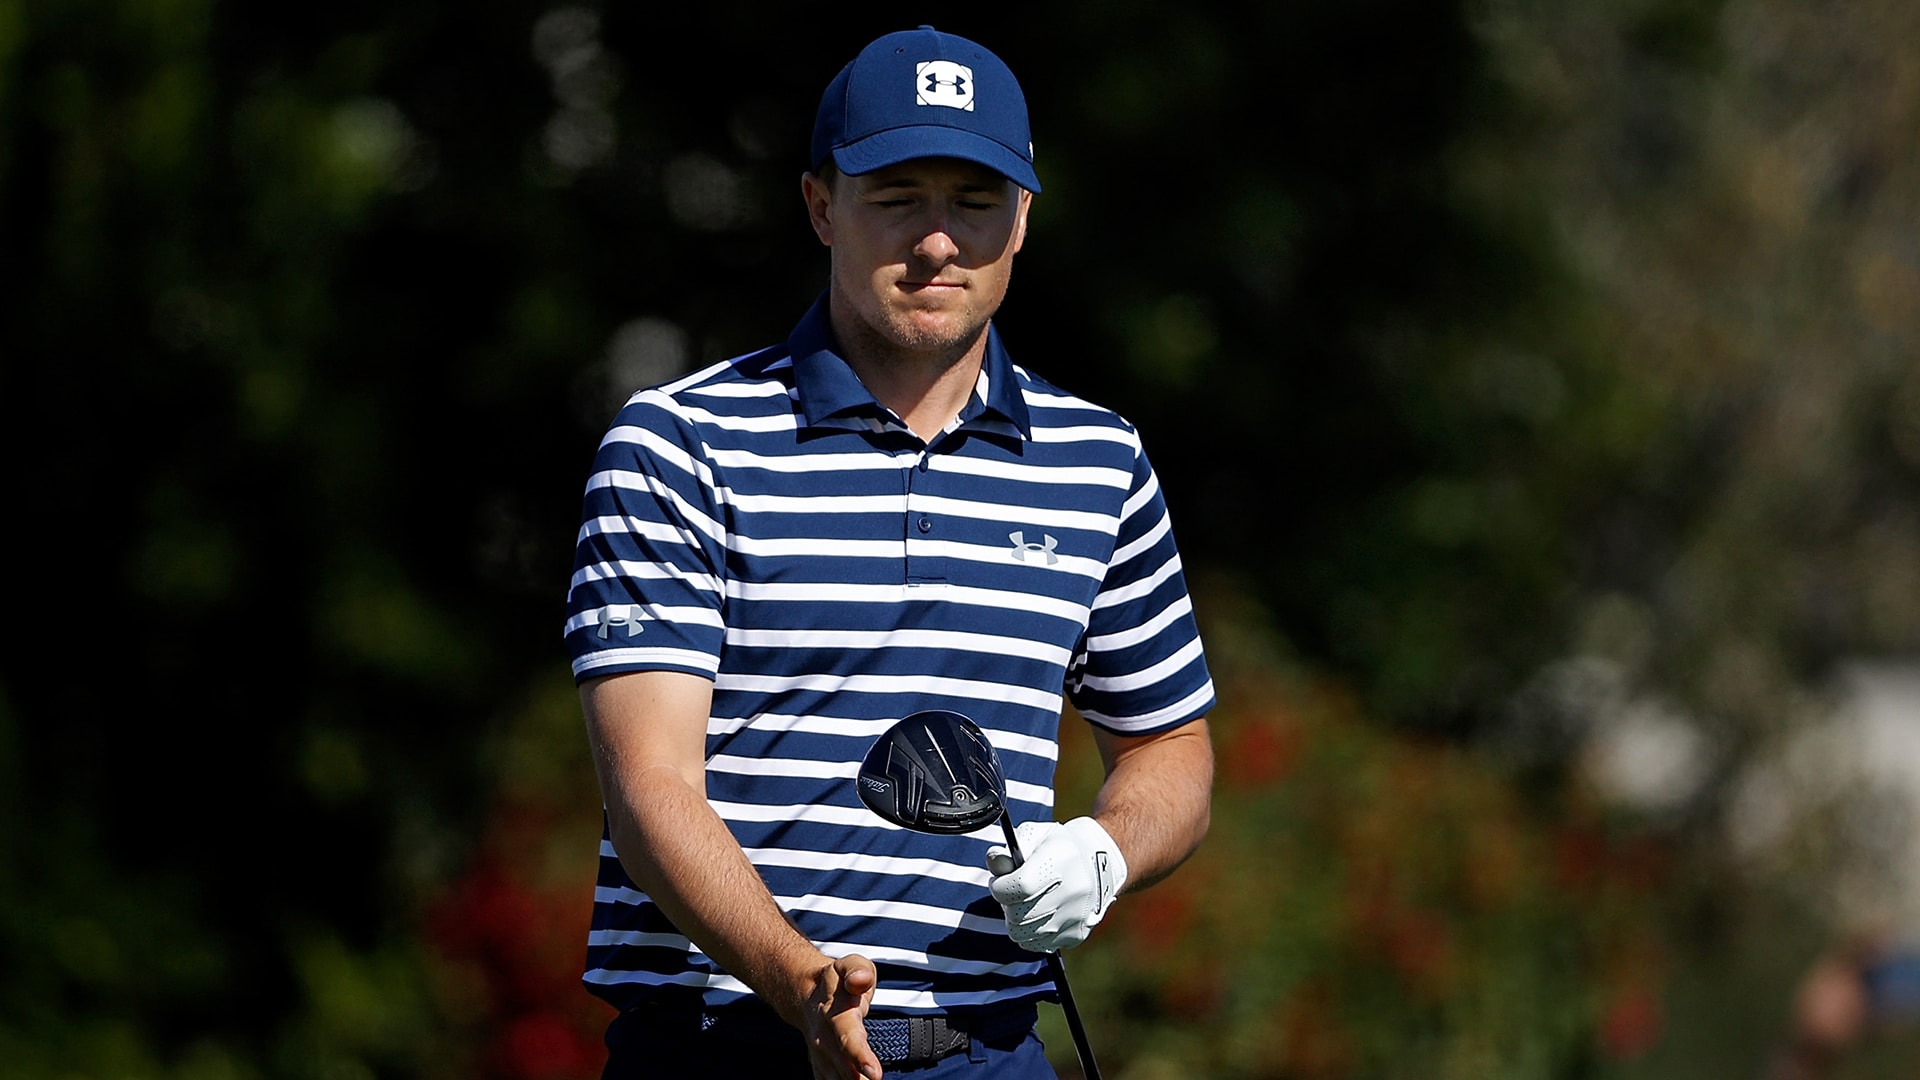 Jordan Spieth (72) disappointed, encouraged after Sunday sputter at WMPO